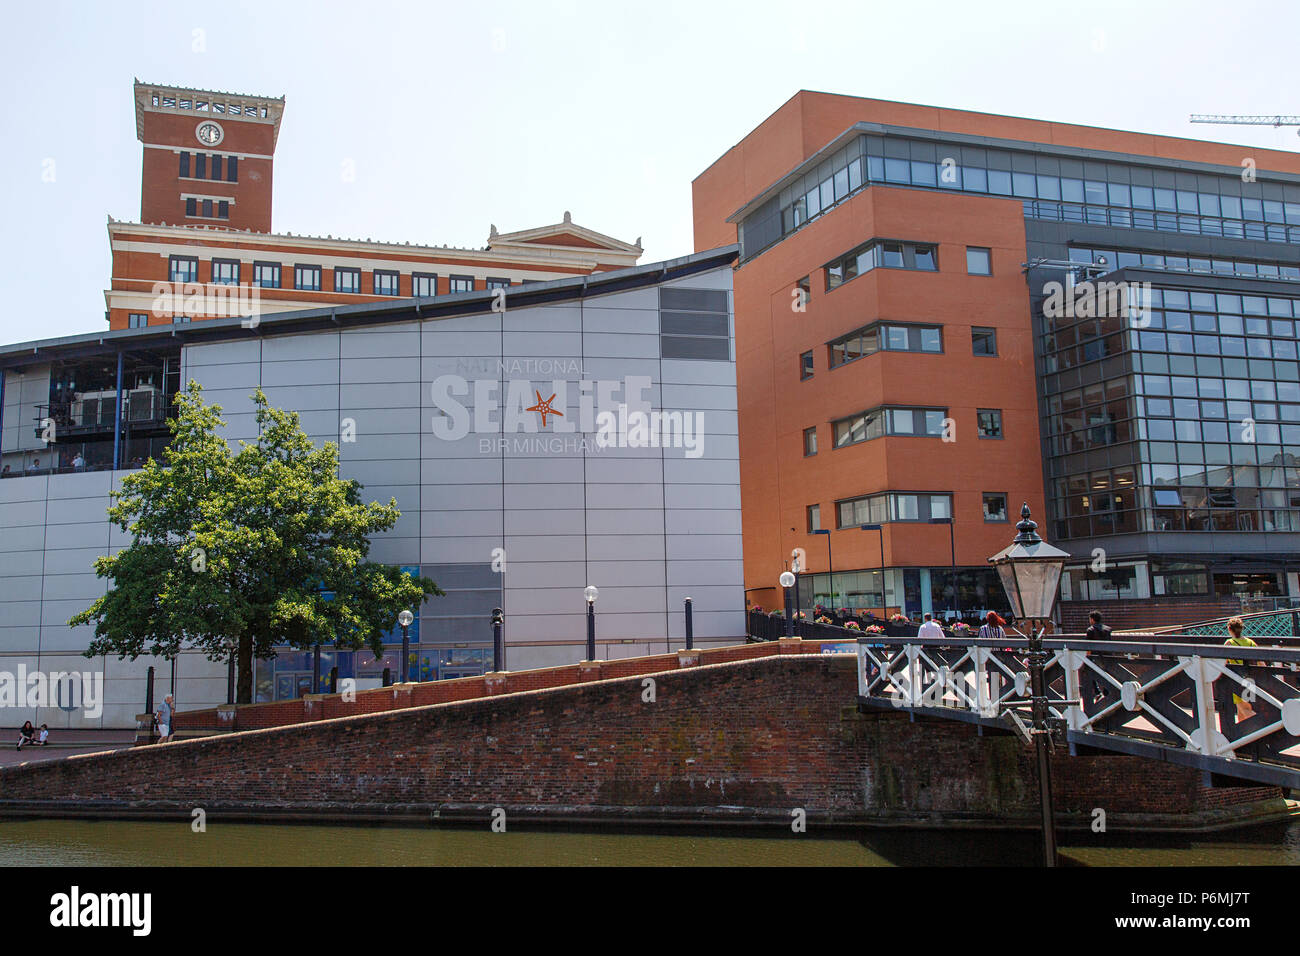 Birmingham, UK: June 29, 2018: The National SEA LIFE Centre is an aquarium with over 60 displays of freshwater and marine life in Brindley Place. Stock Photo